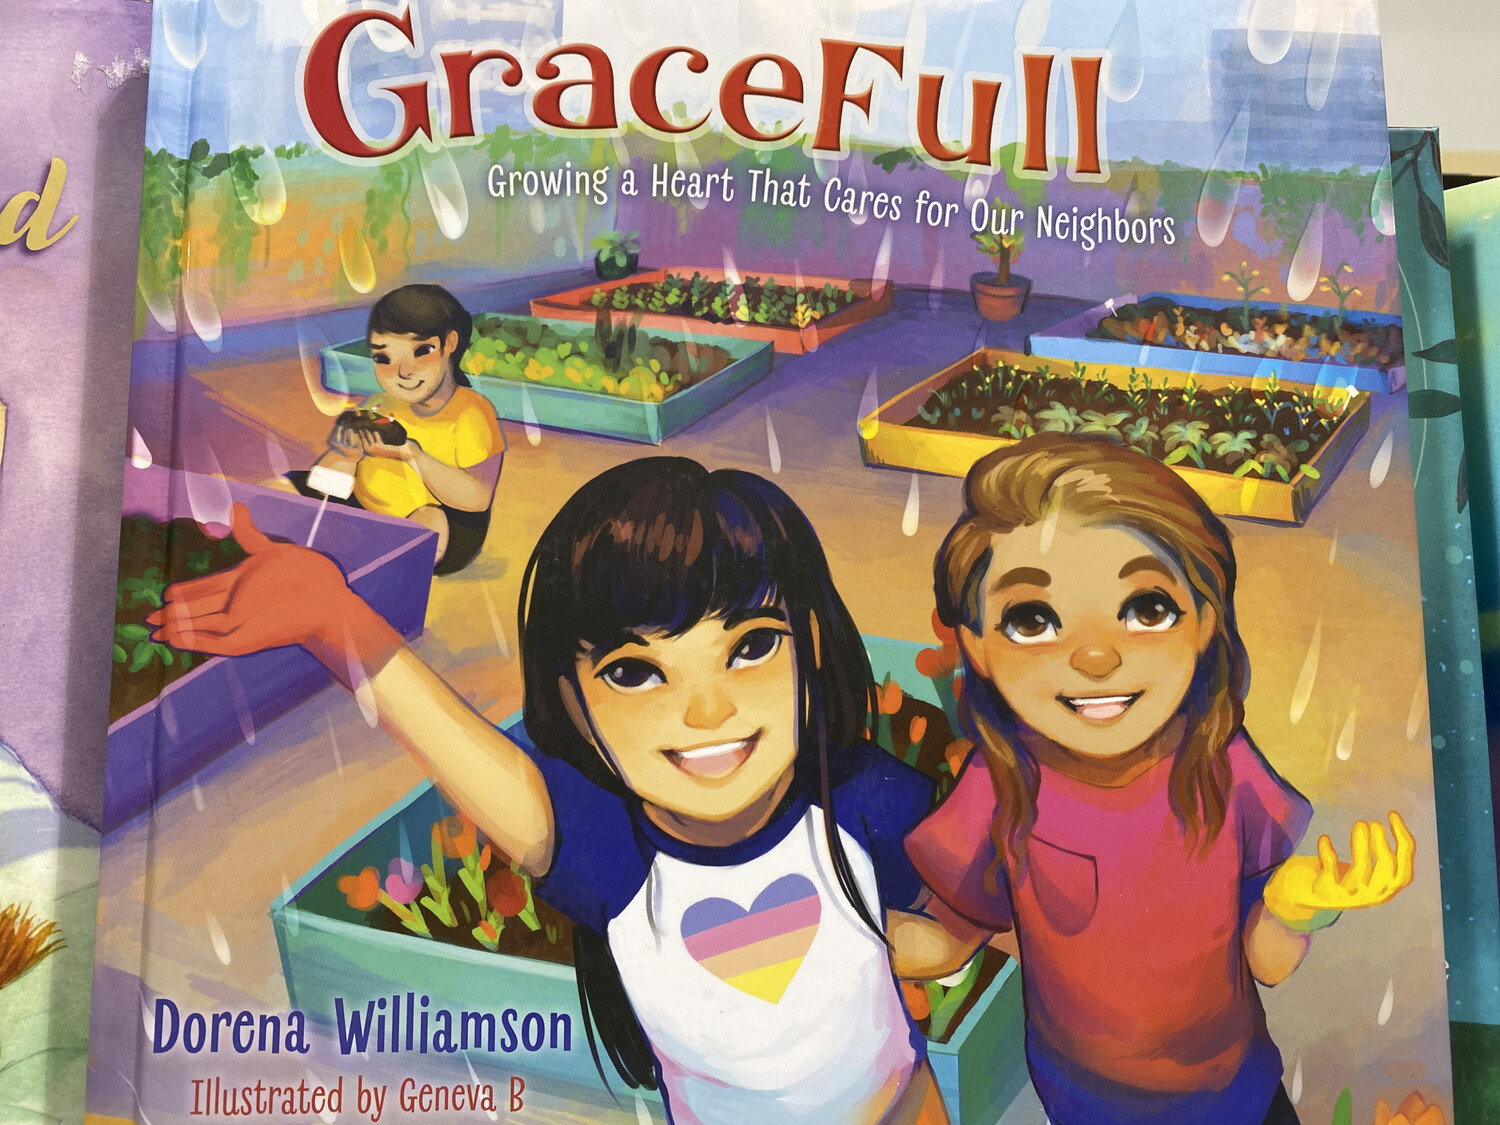 WILLIAMSON, Gracefull